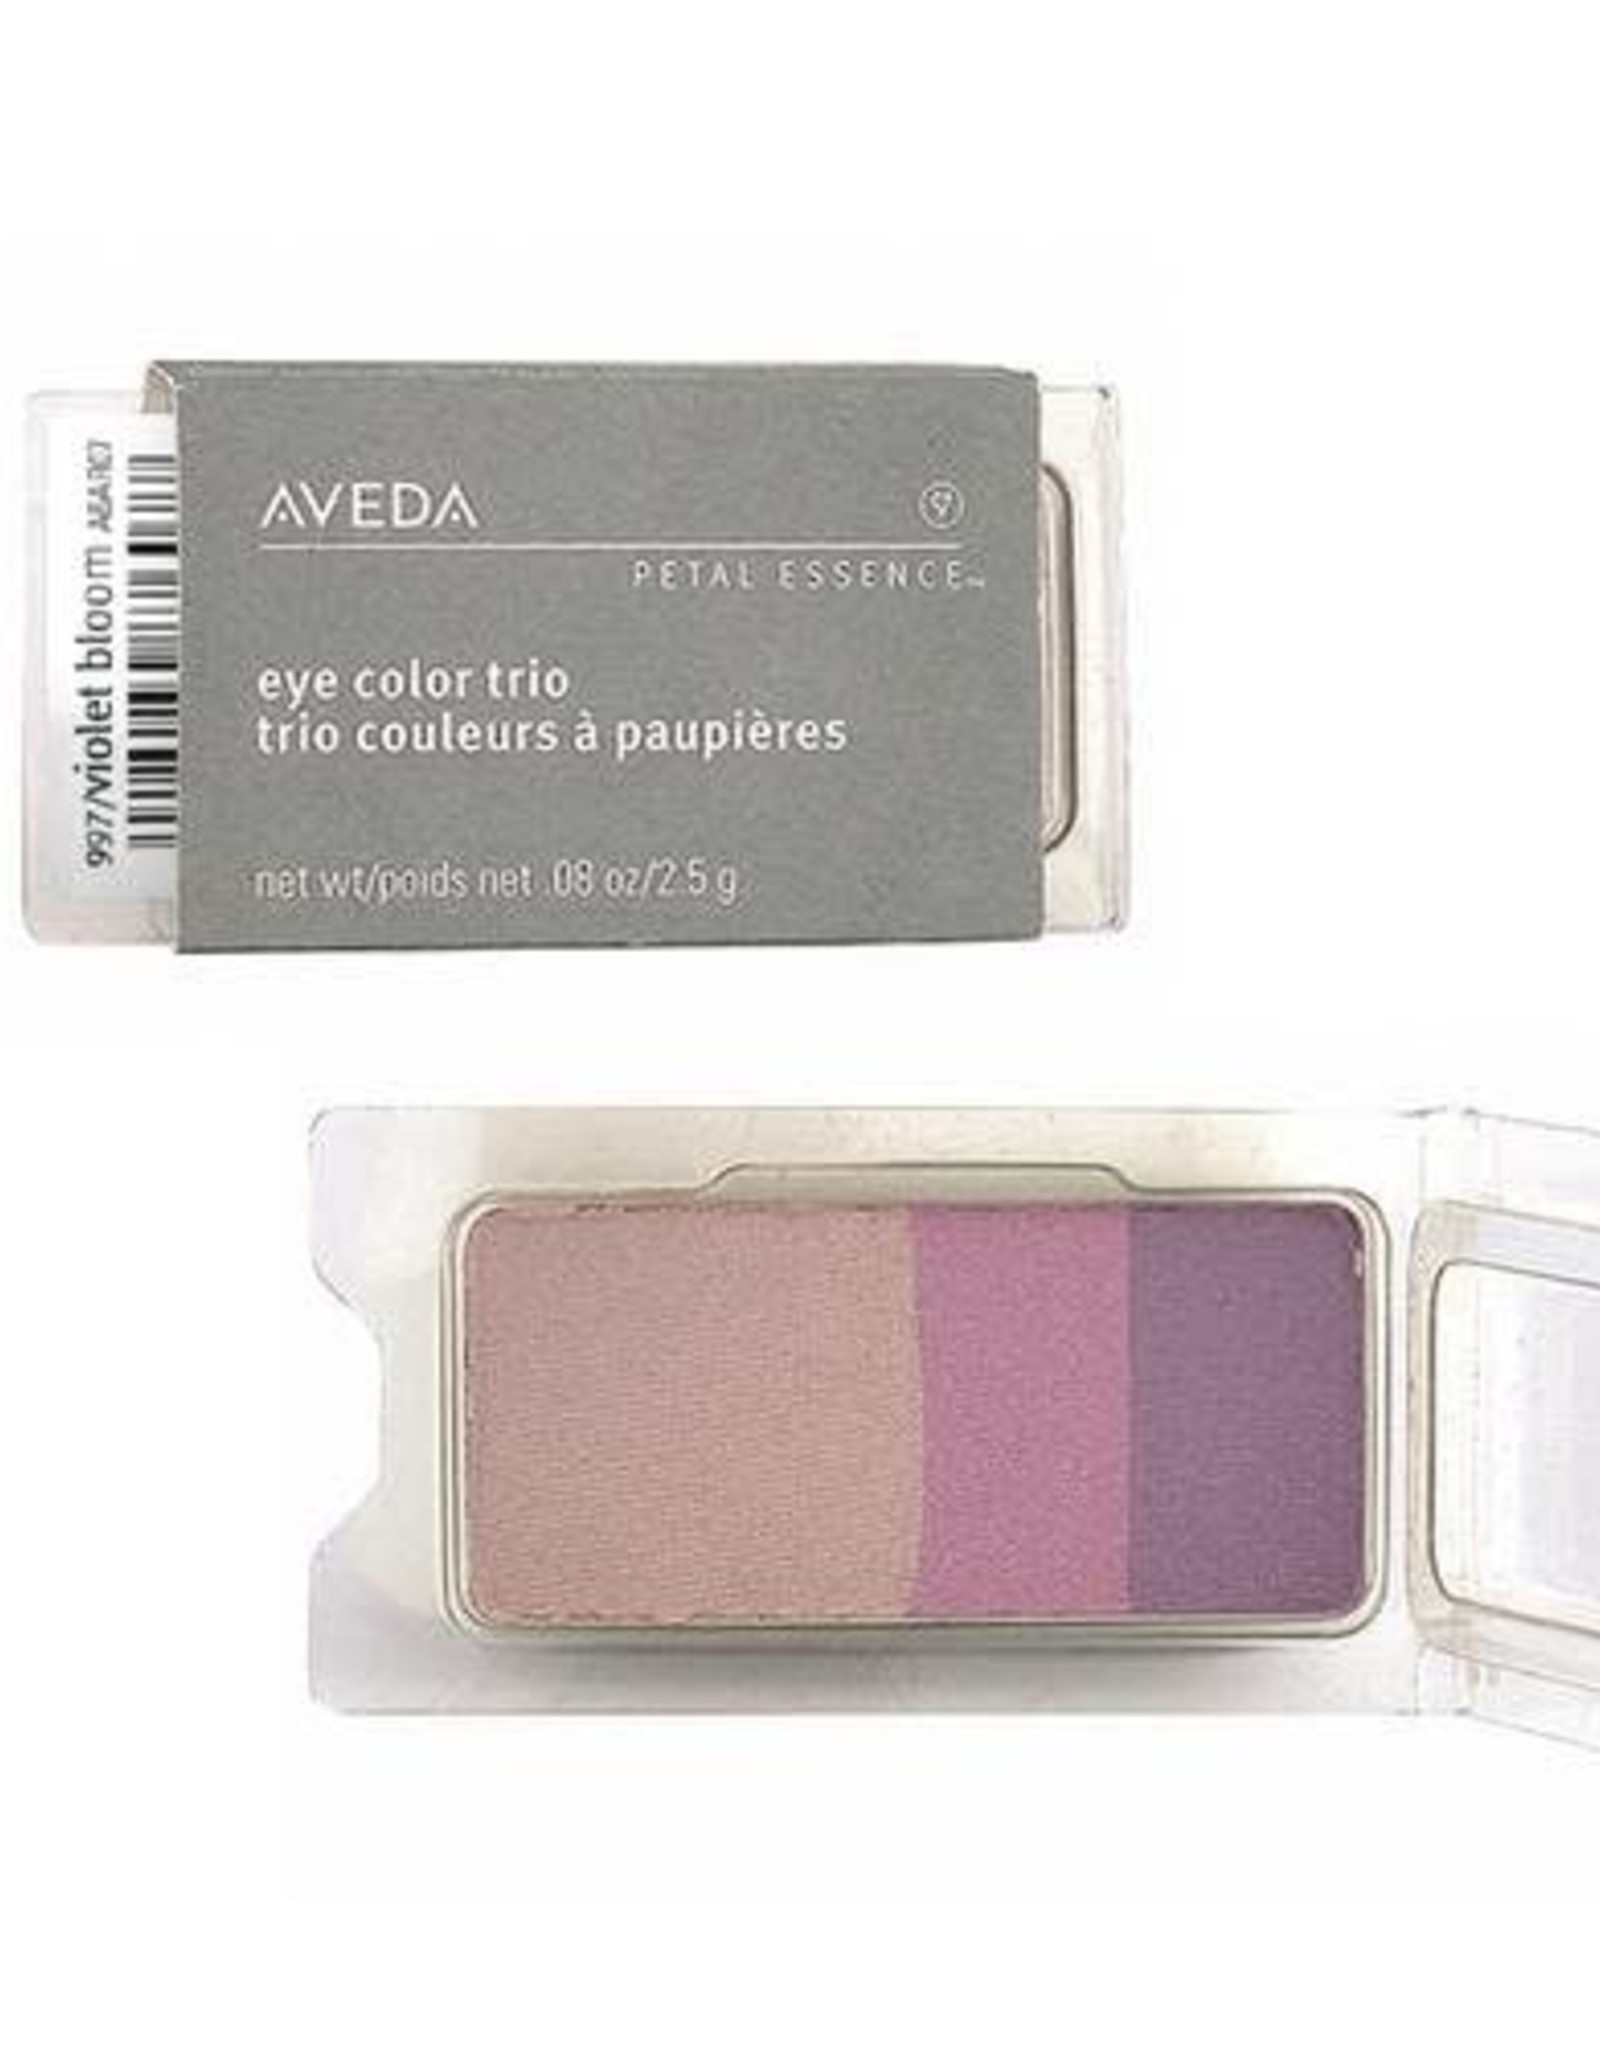 AVEDA Petal Essence™ Eye Color Trio